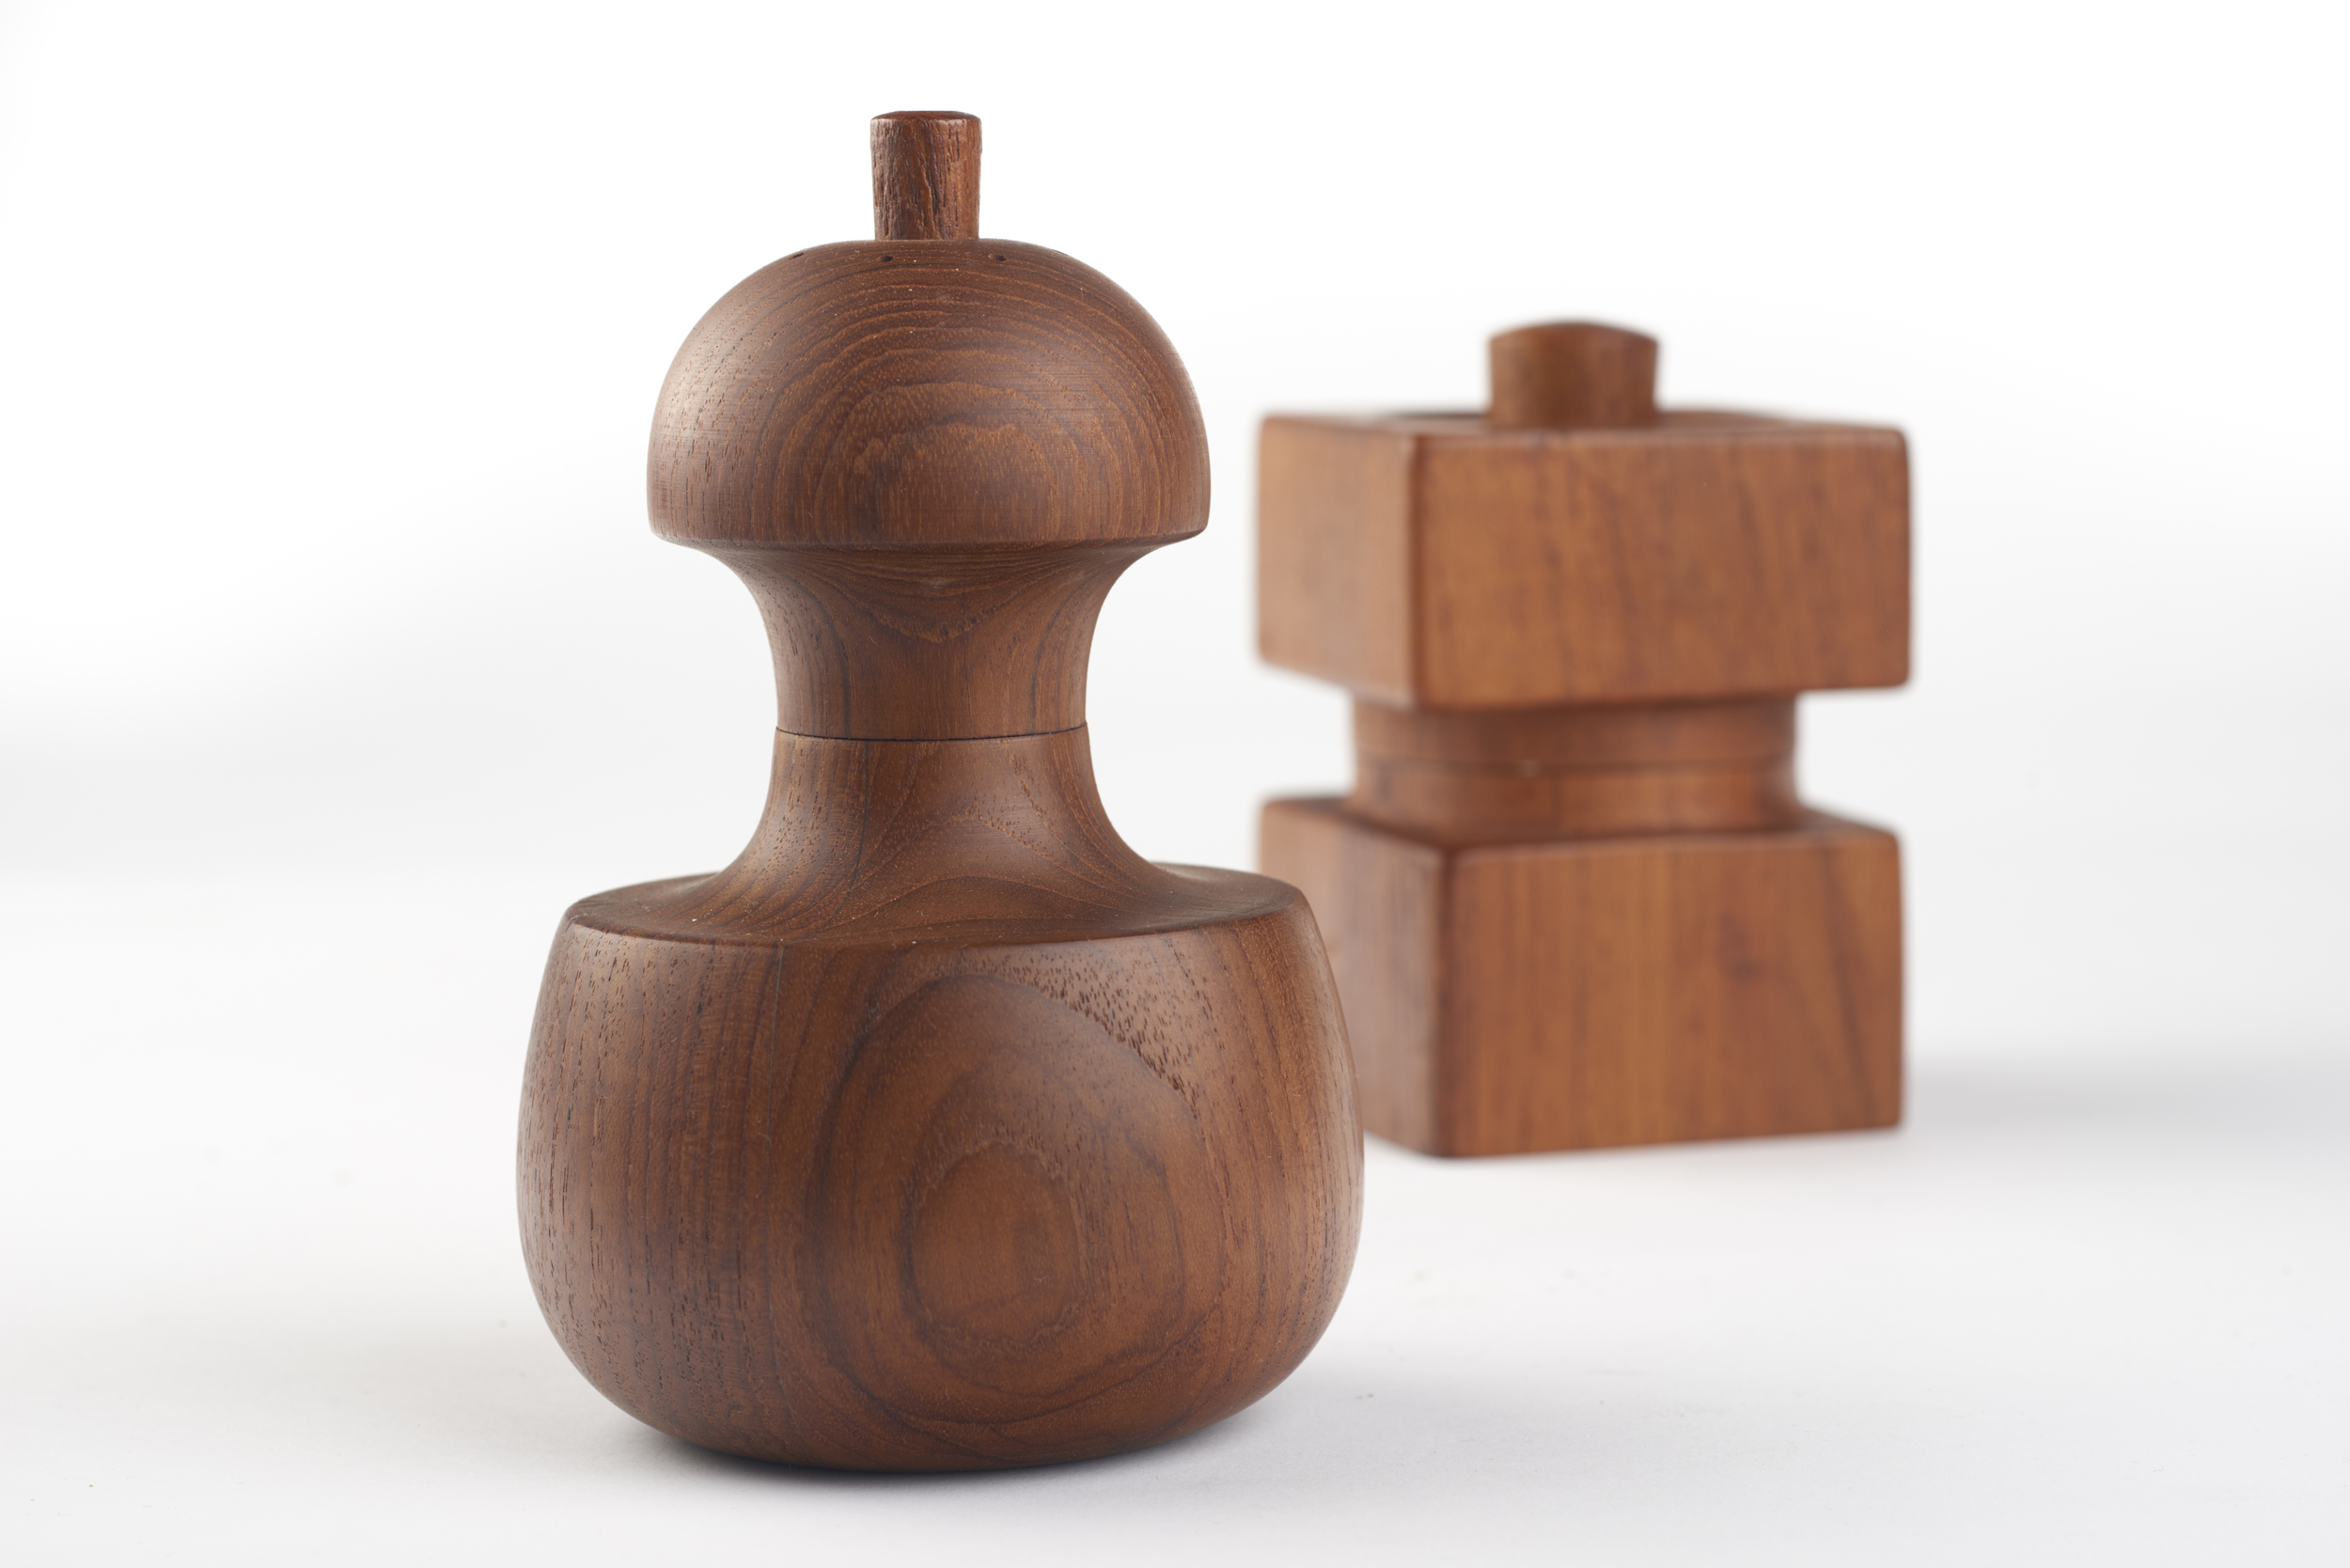 Two examples of Quistgaard's beautiful teak peppermills.  Photo sourced from the Heart Museum website. (links below)